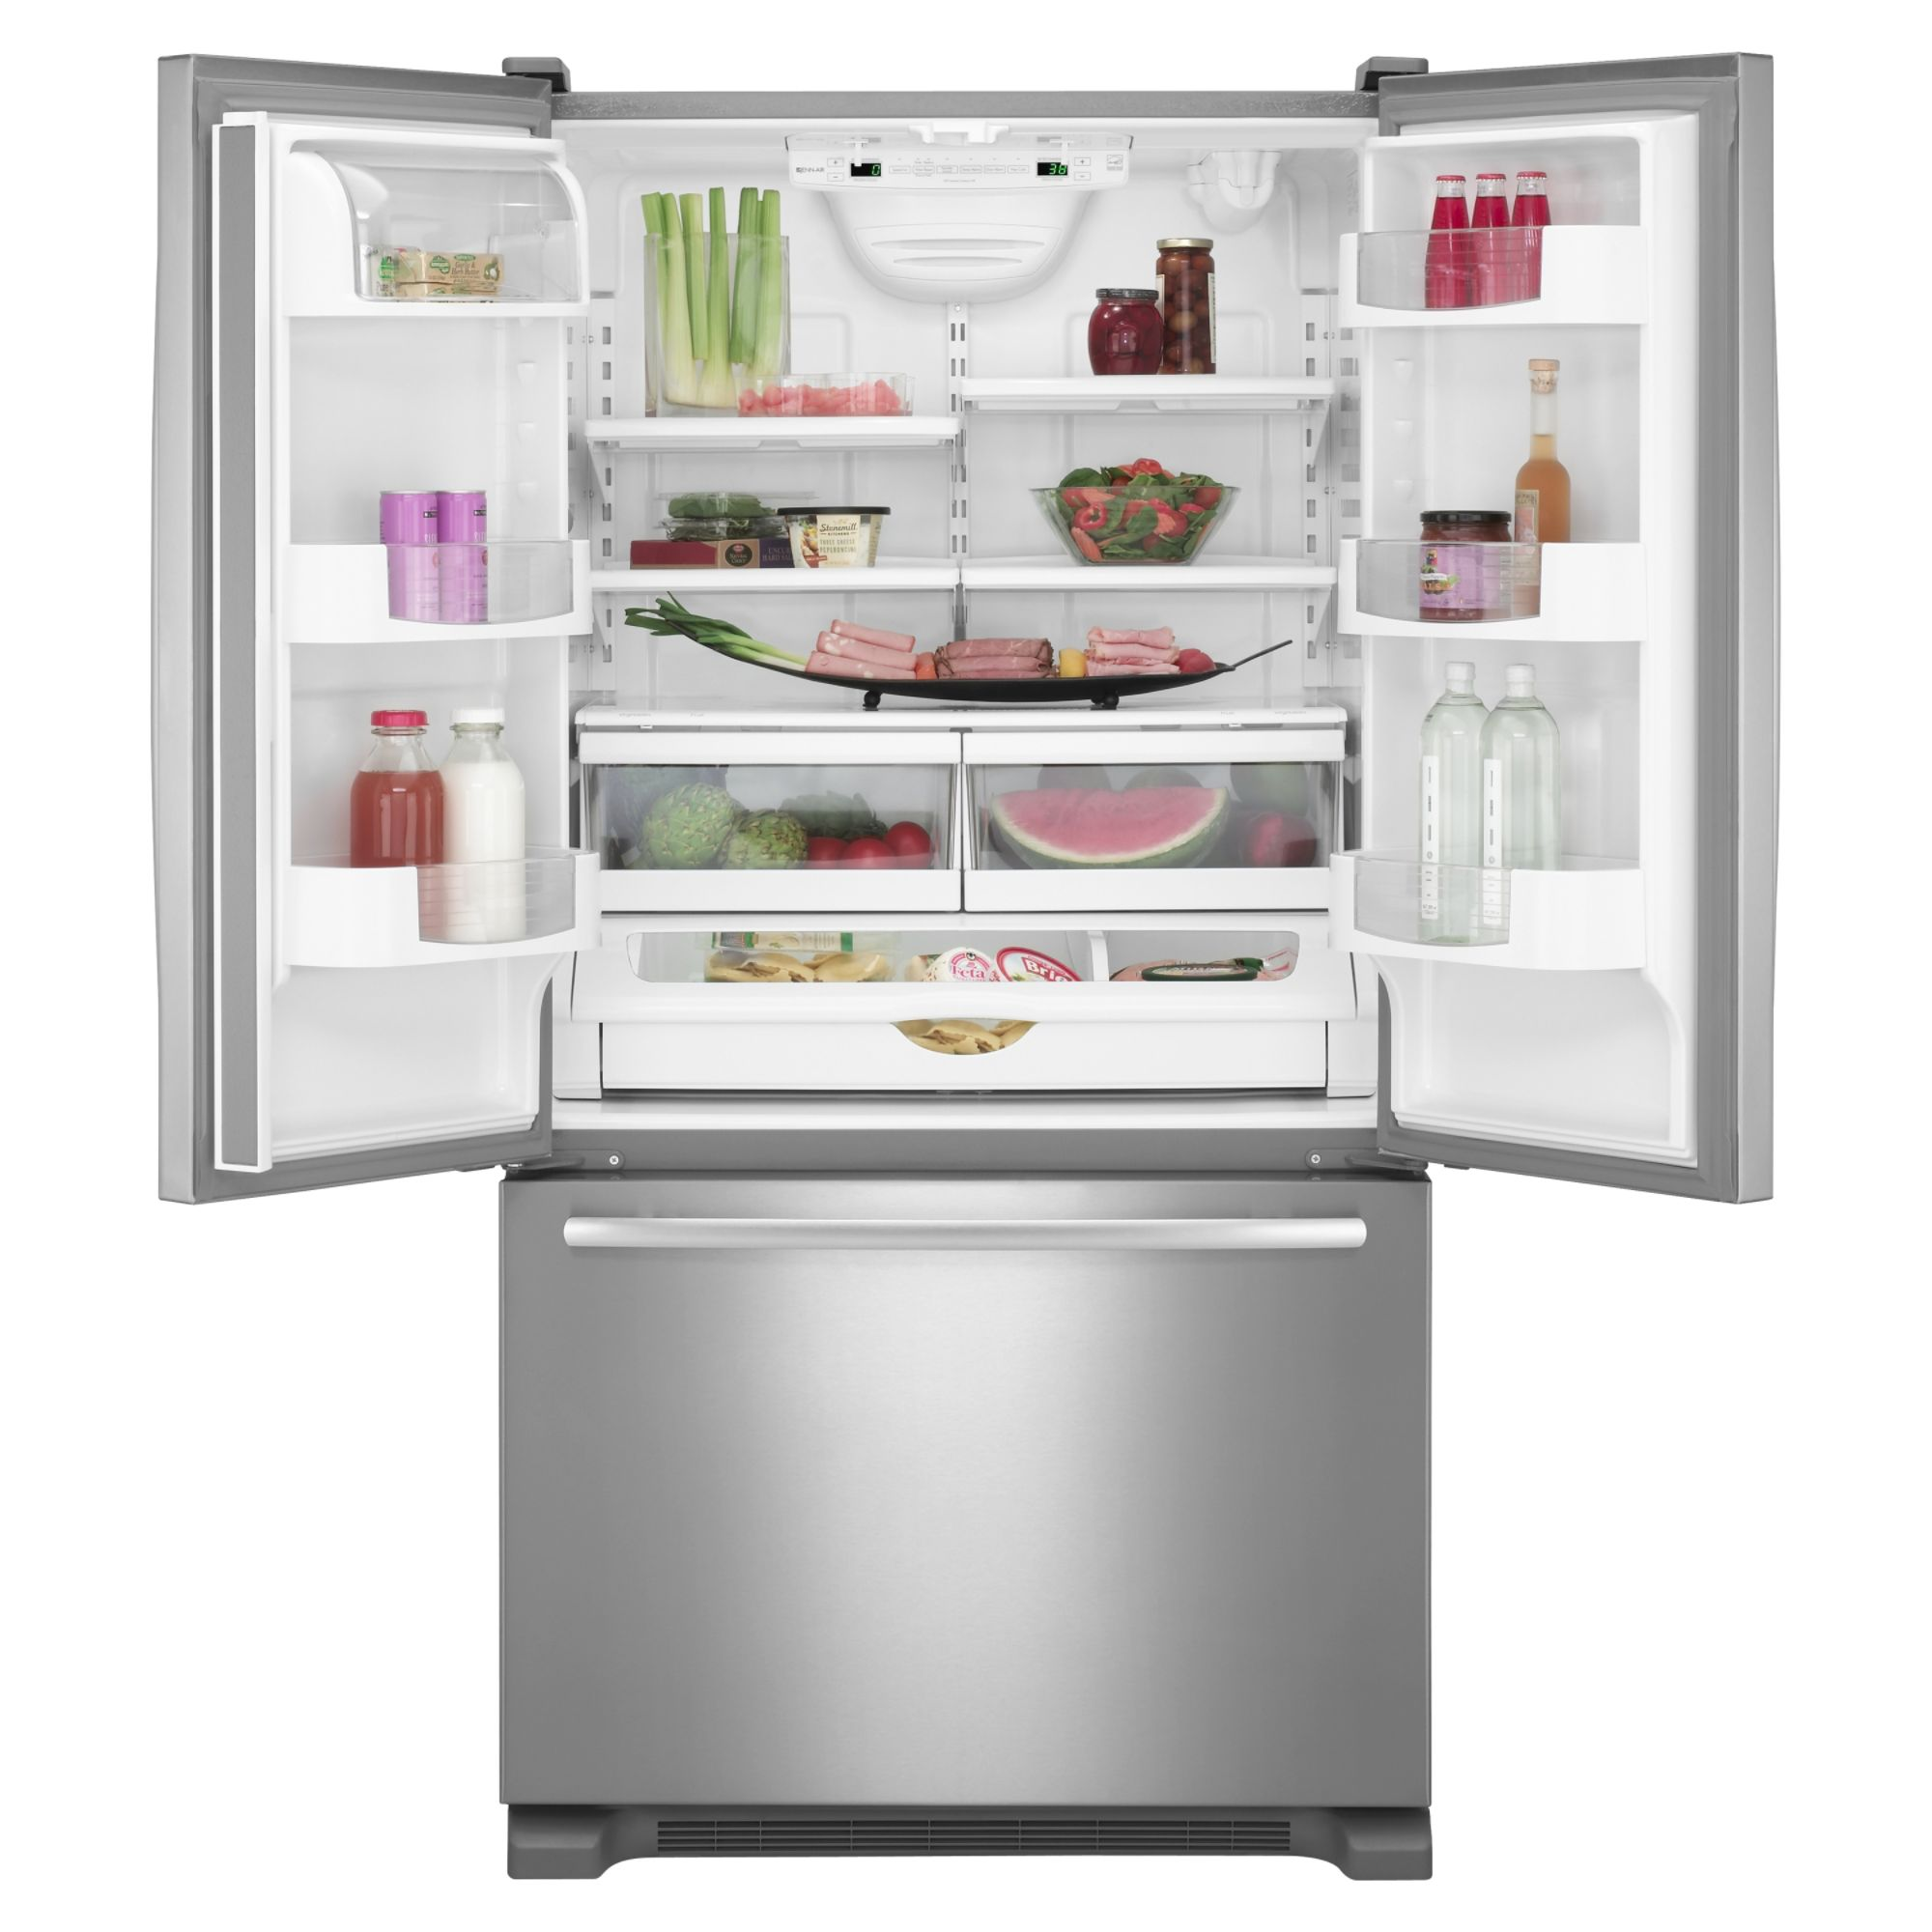 Jenn-Air 19.6 cu. ft. French-Door Bottom Freezer Refrigerator w/ Internal Dispenser